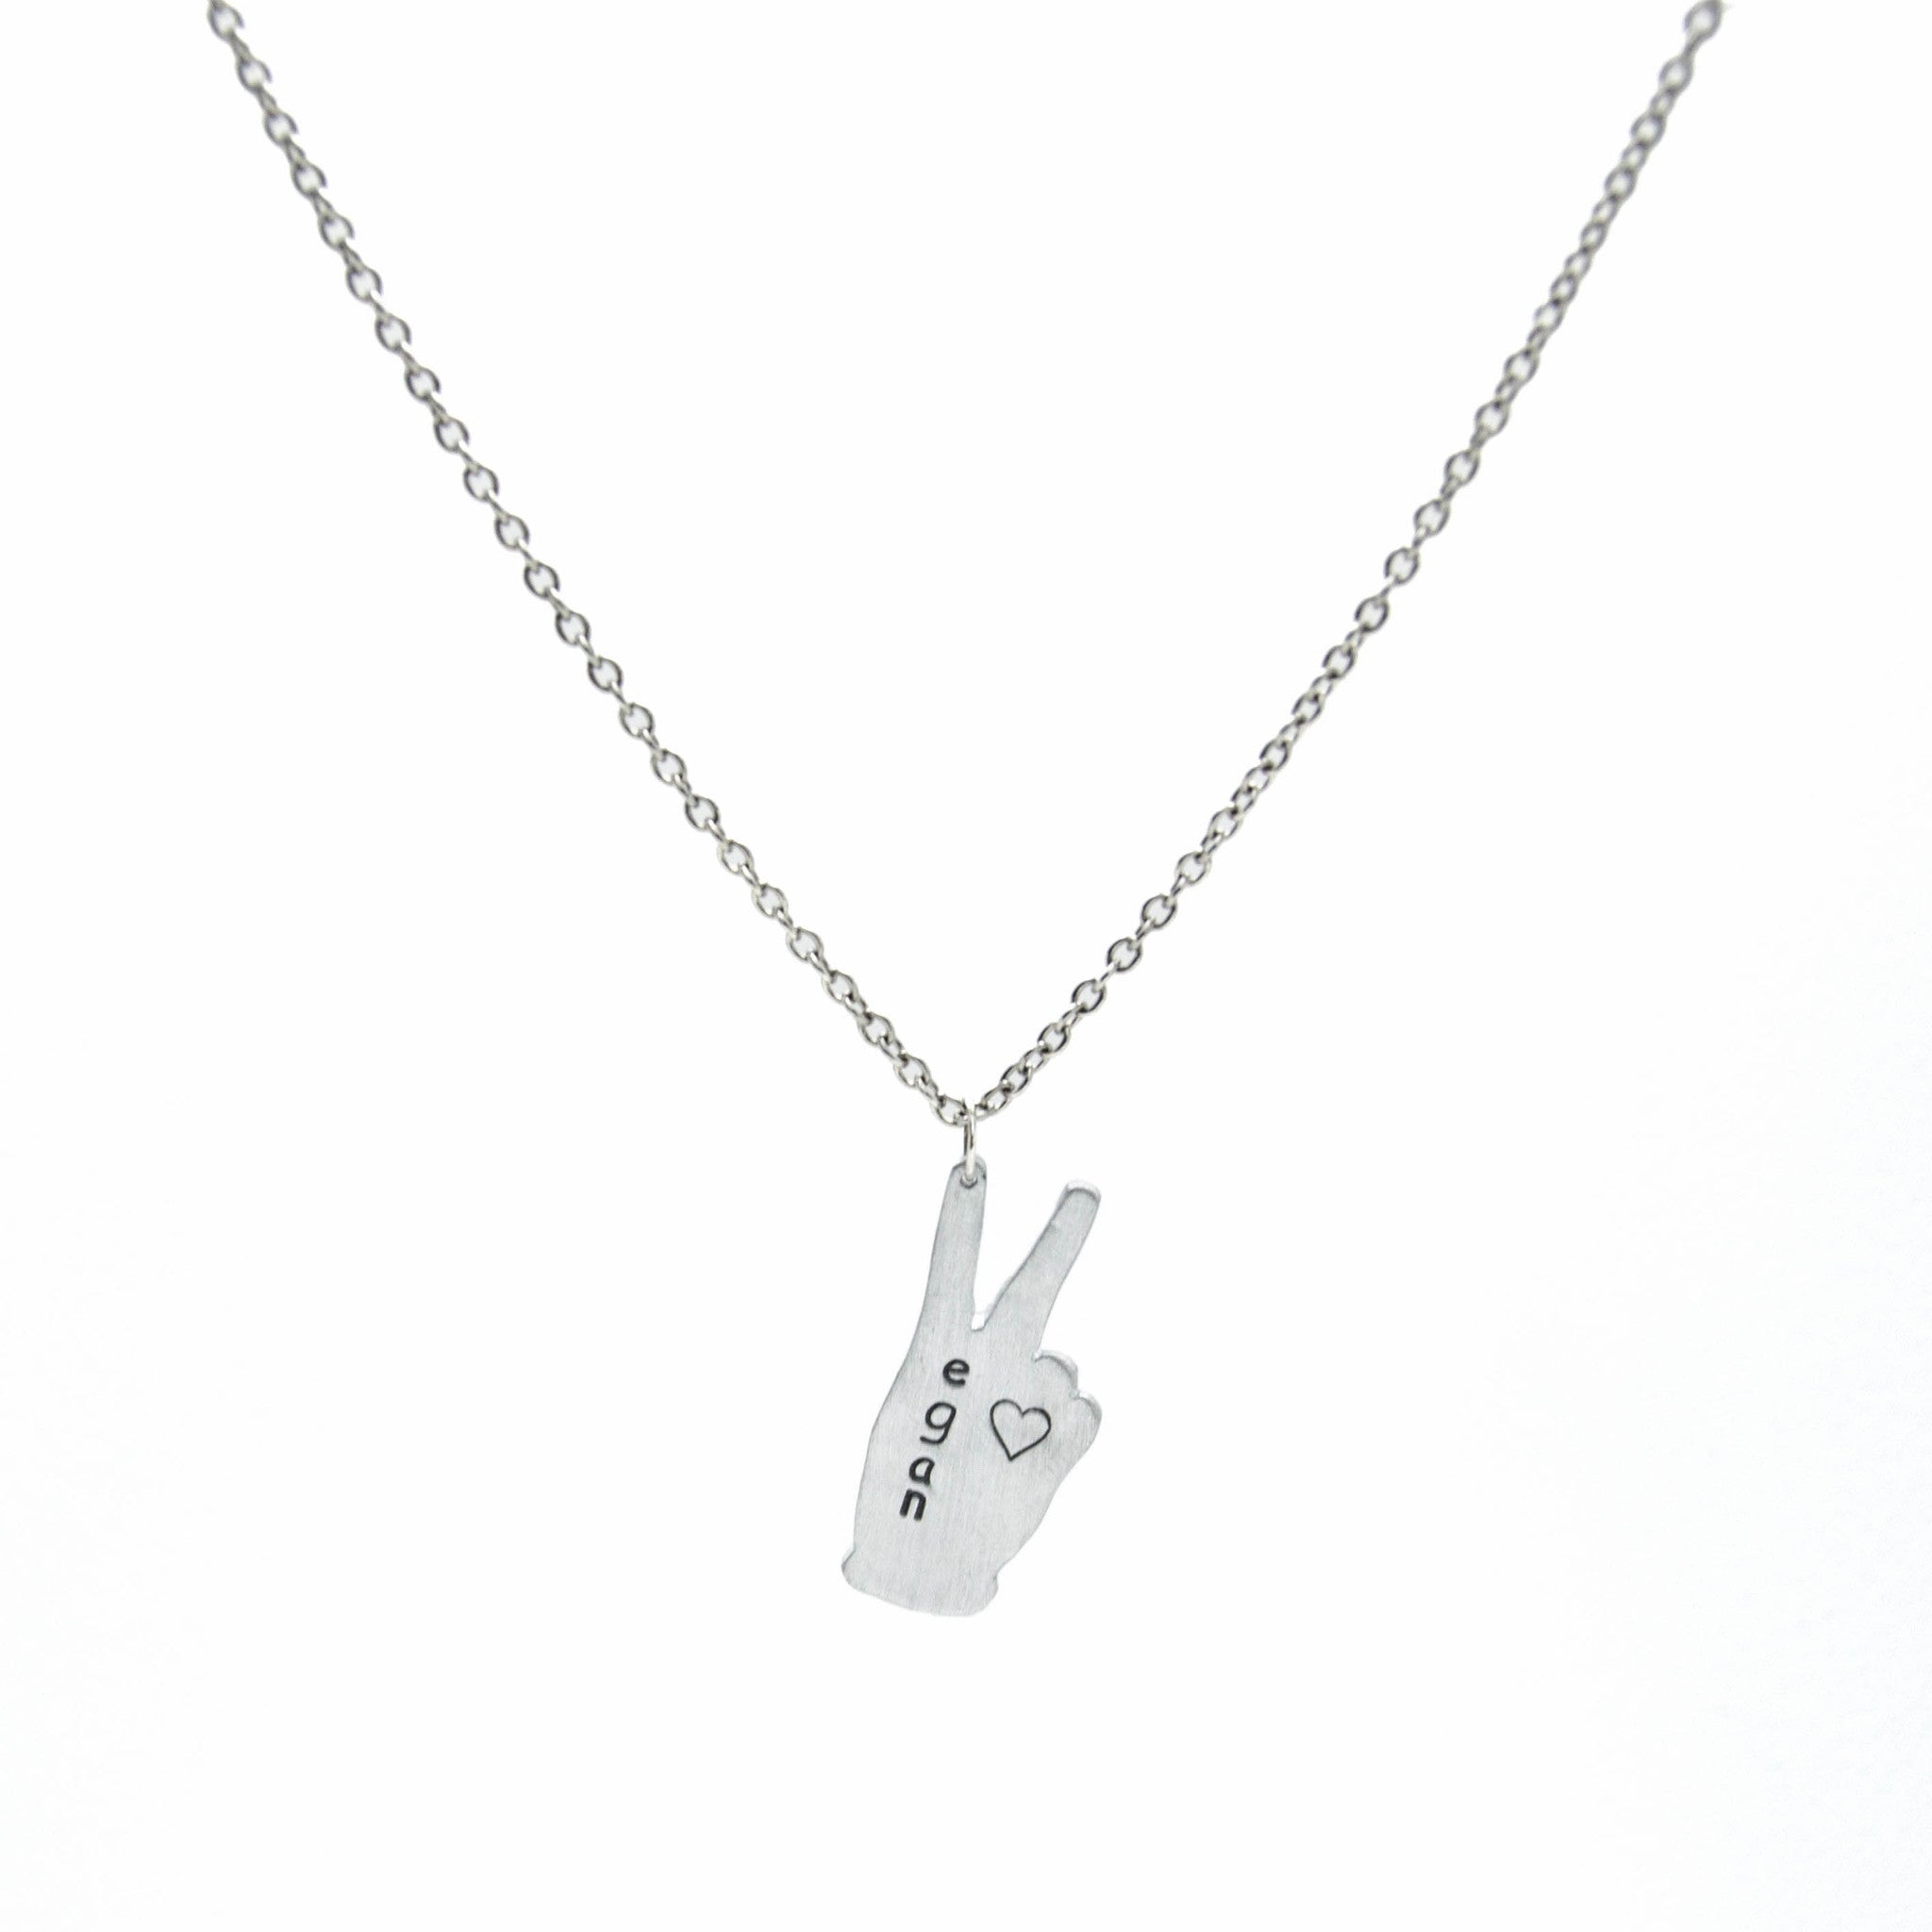 itm symbol charm engraved necklace silver word peace on sterling pendant with rhodium